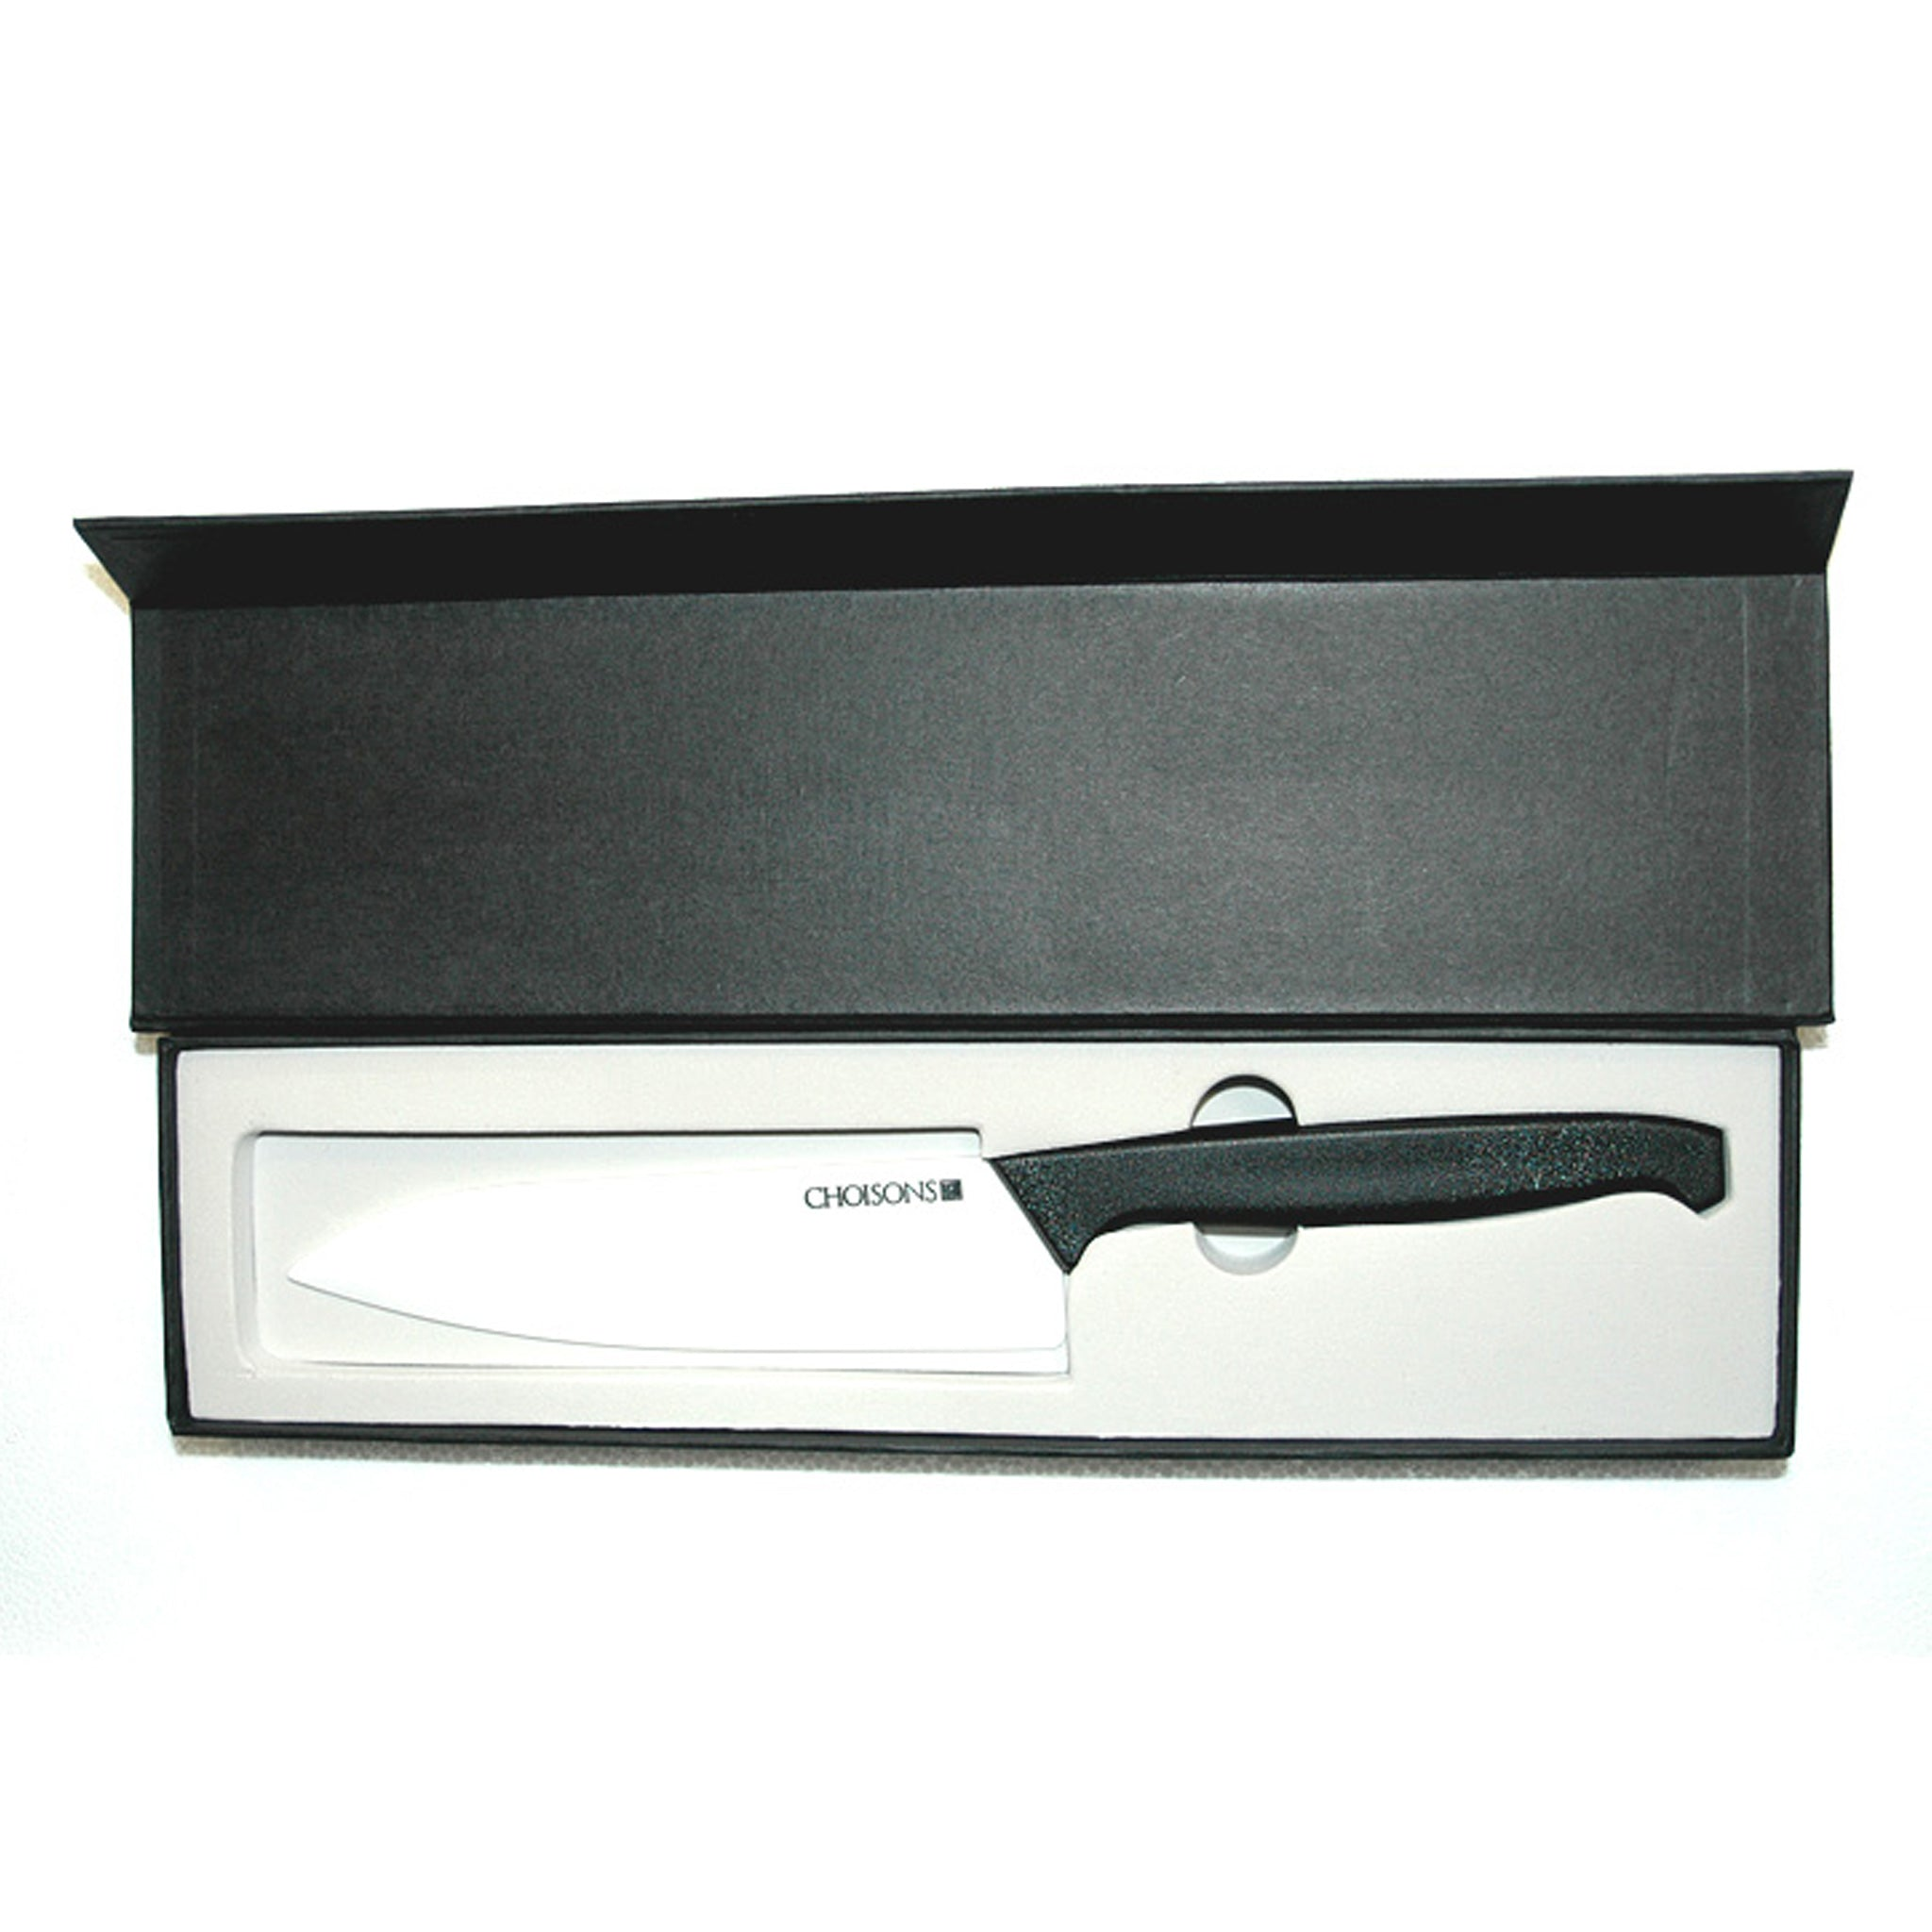 "Choisons® Original Series 5"" Utility Knife with Gift Box"